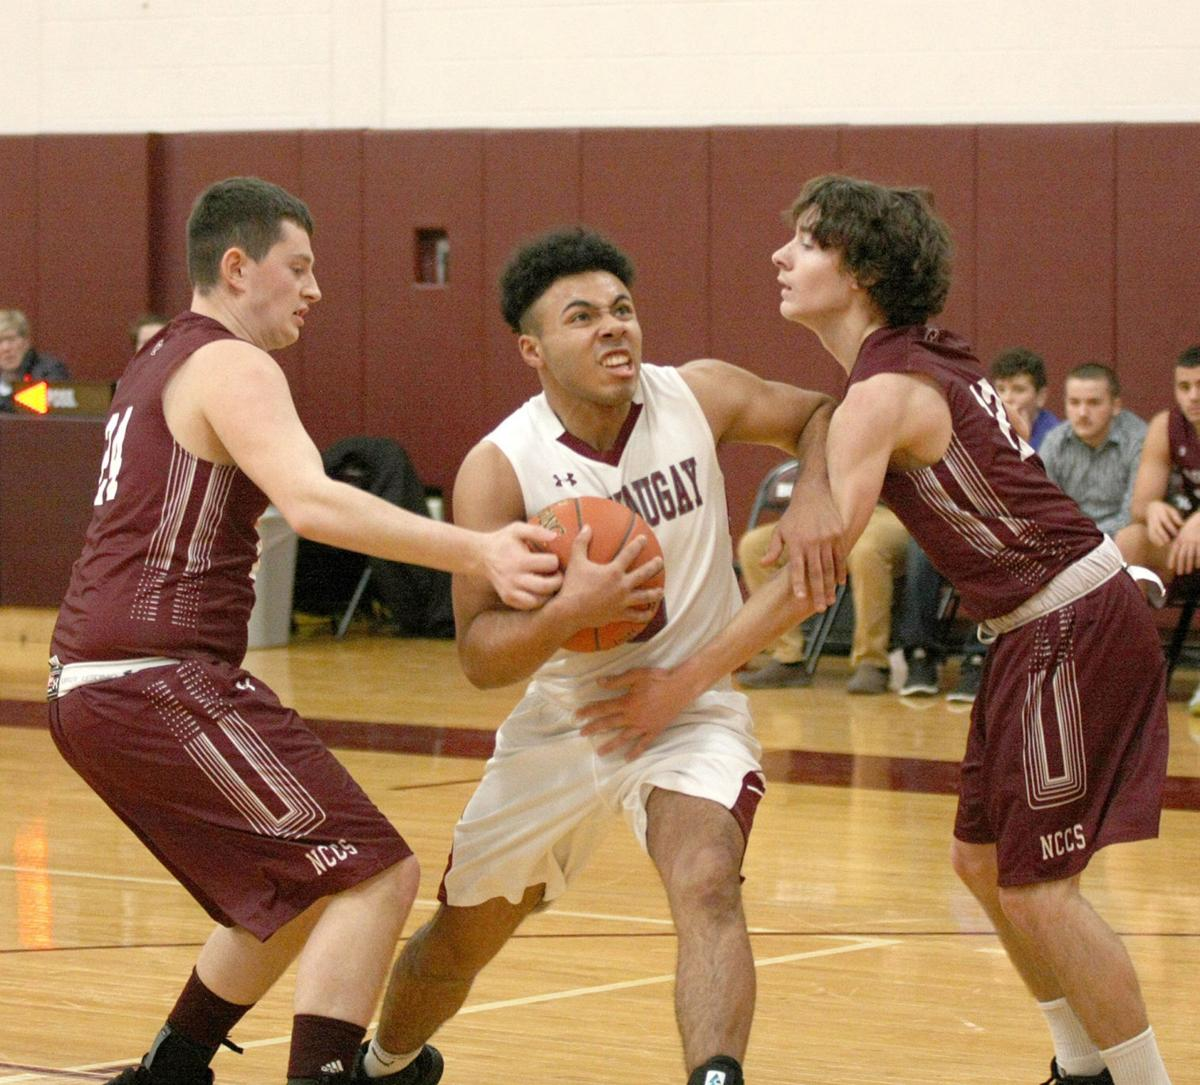 Chateaugay boys grind out win, stay undefeated